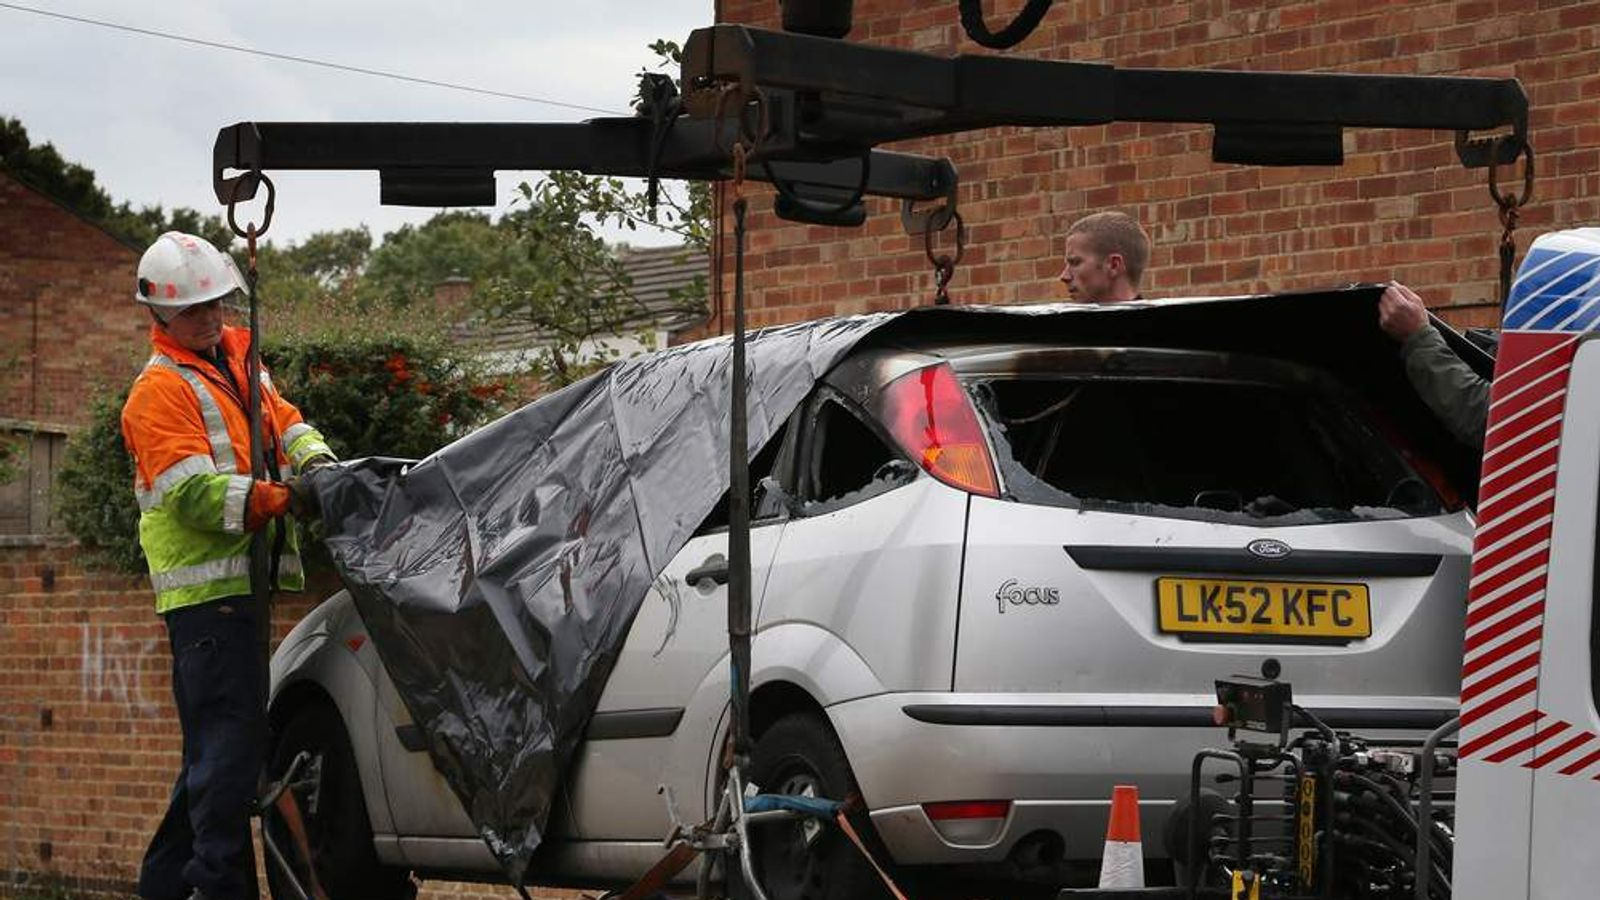 Police remove a burnt out car near a house where five people died in a fire on October 15, 2012 in Harlow, England.